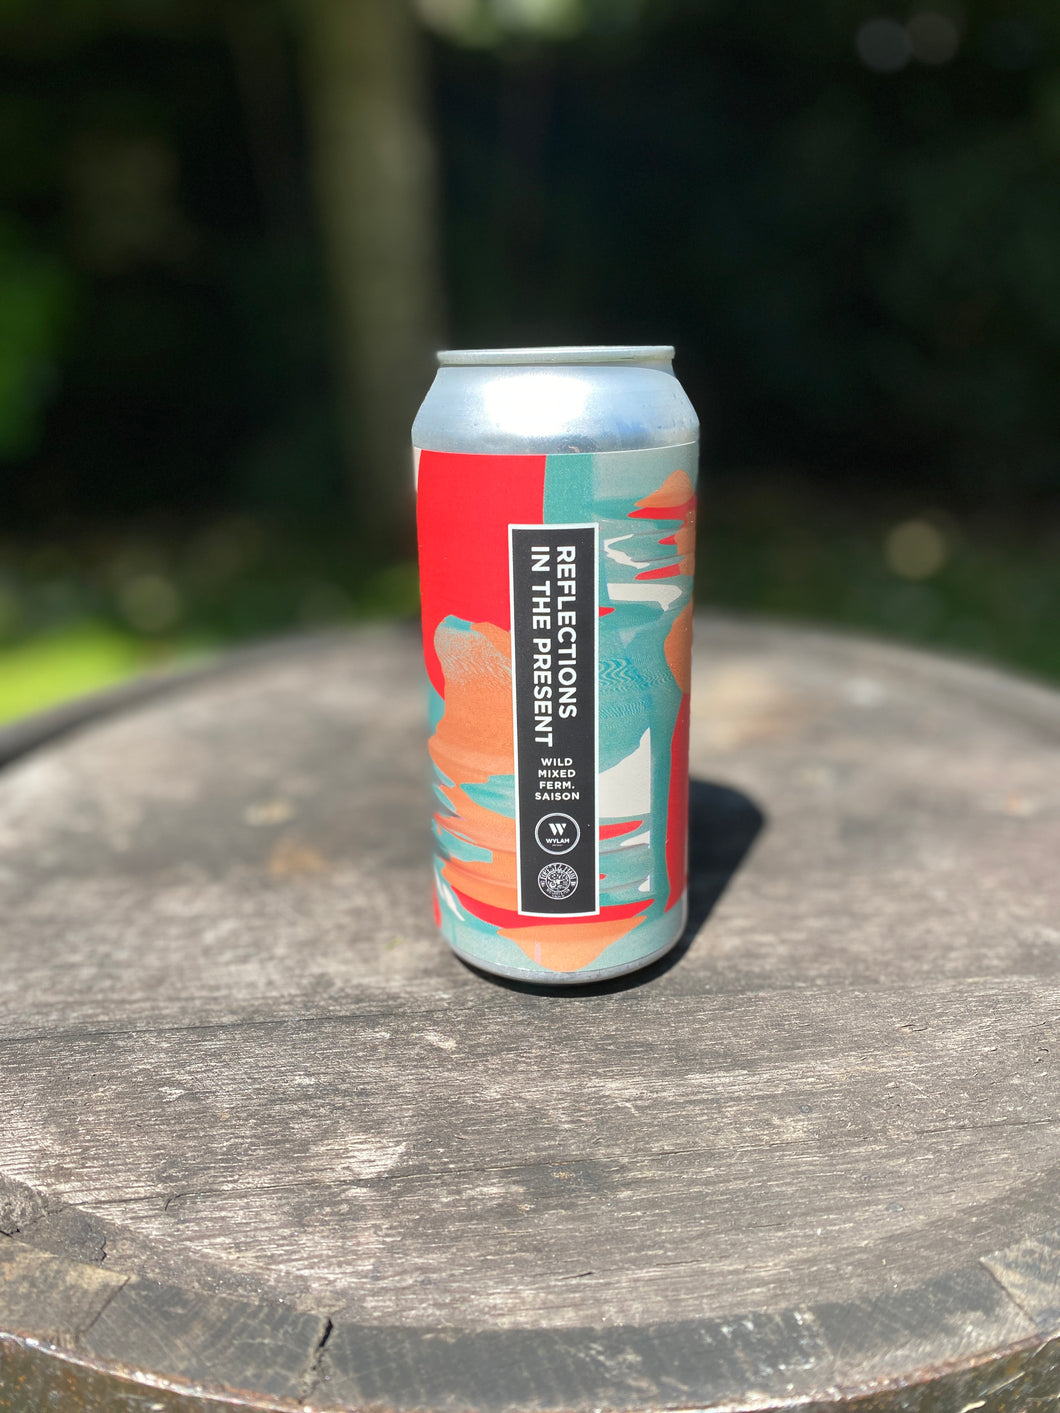 Wylam - Reflections in the Present - 4.9% mixed ferm saison 440ml can